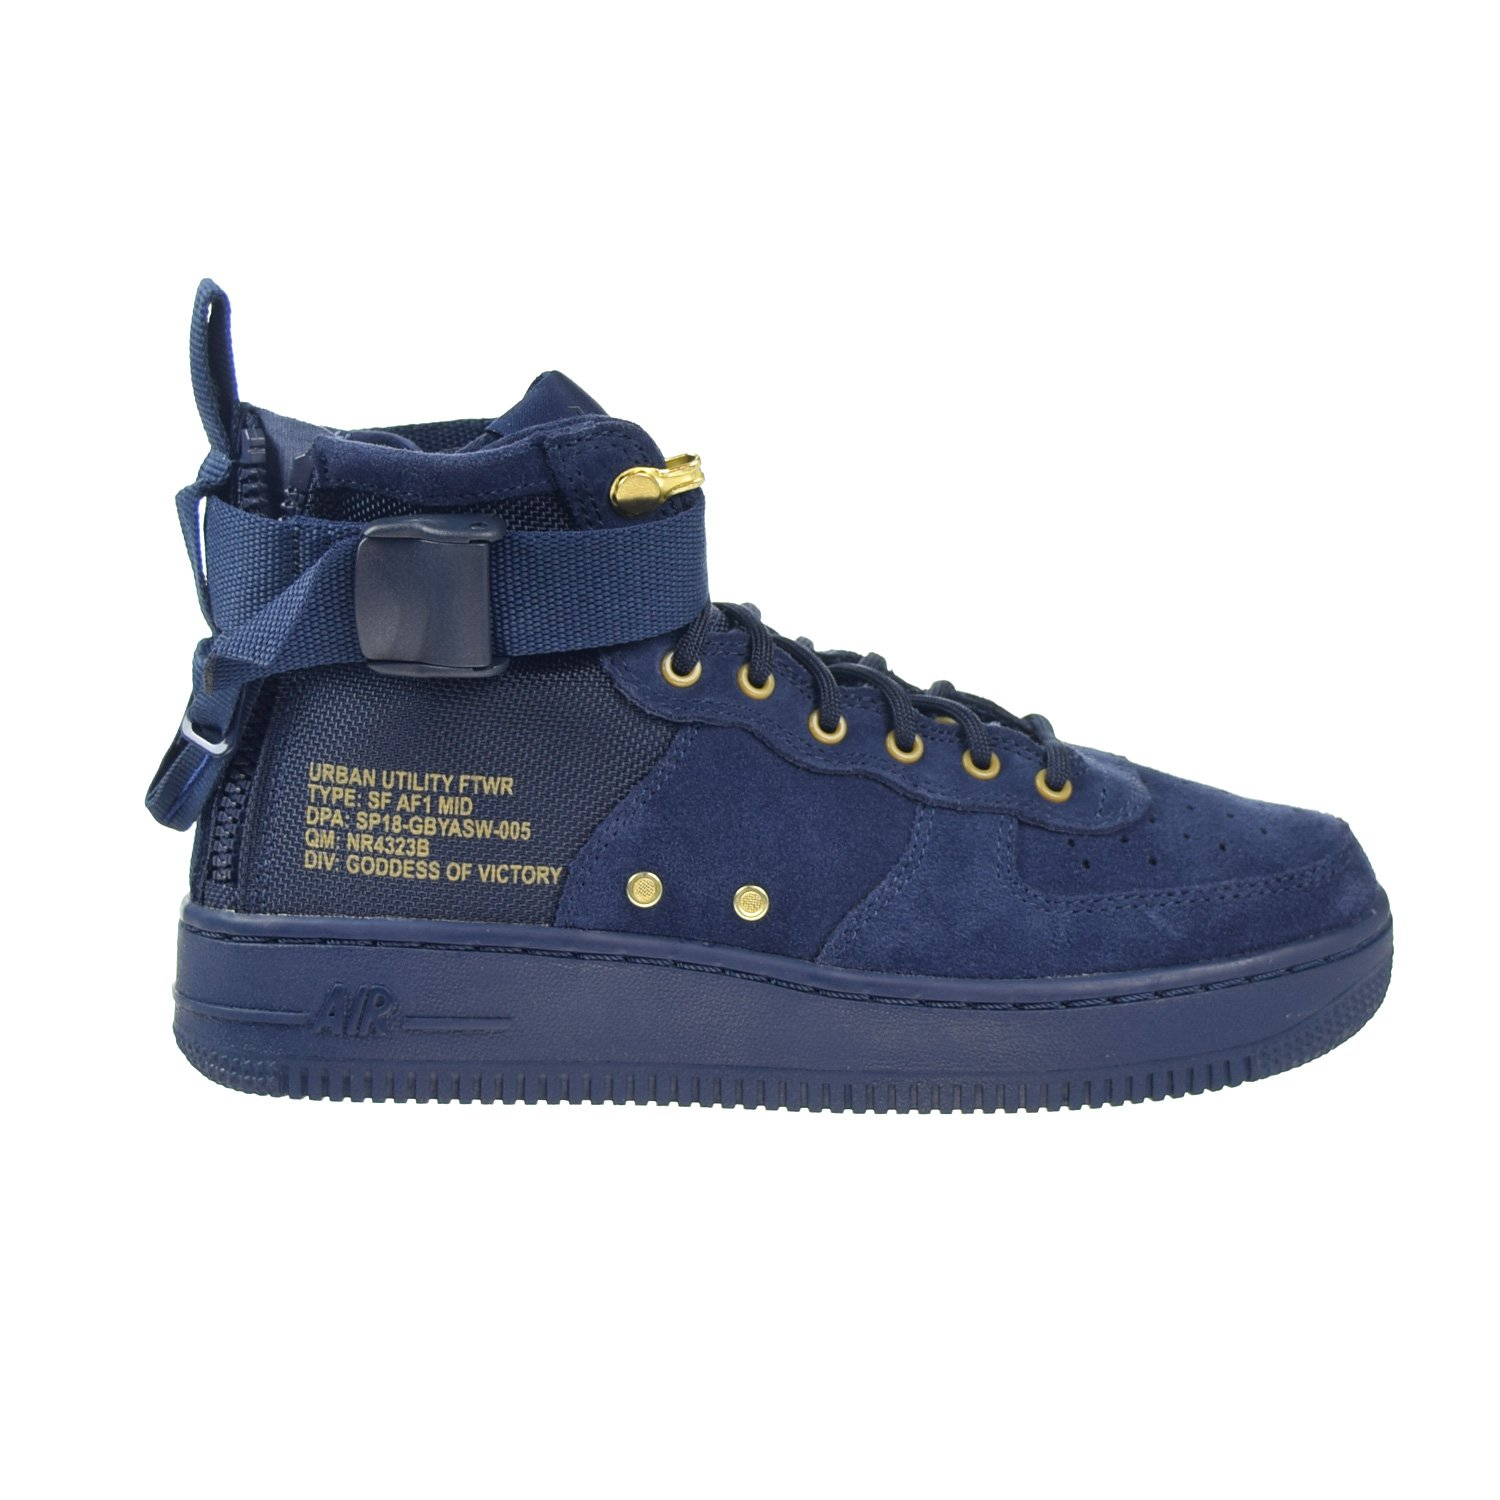 Nike SF AF1 Air Force MID Big Kids Shoes Obsidian Blue/Black aj0424-400 (3.5 M US) by Nike (Image #1)